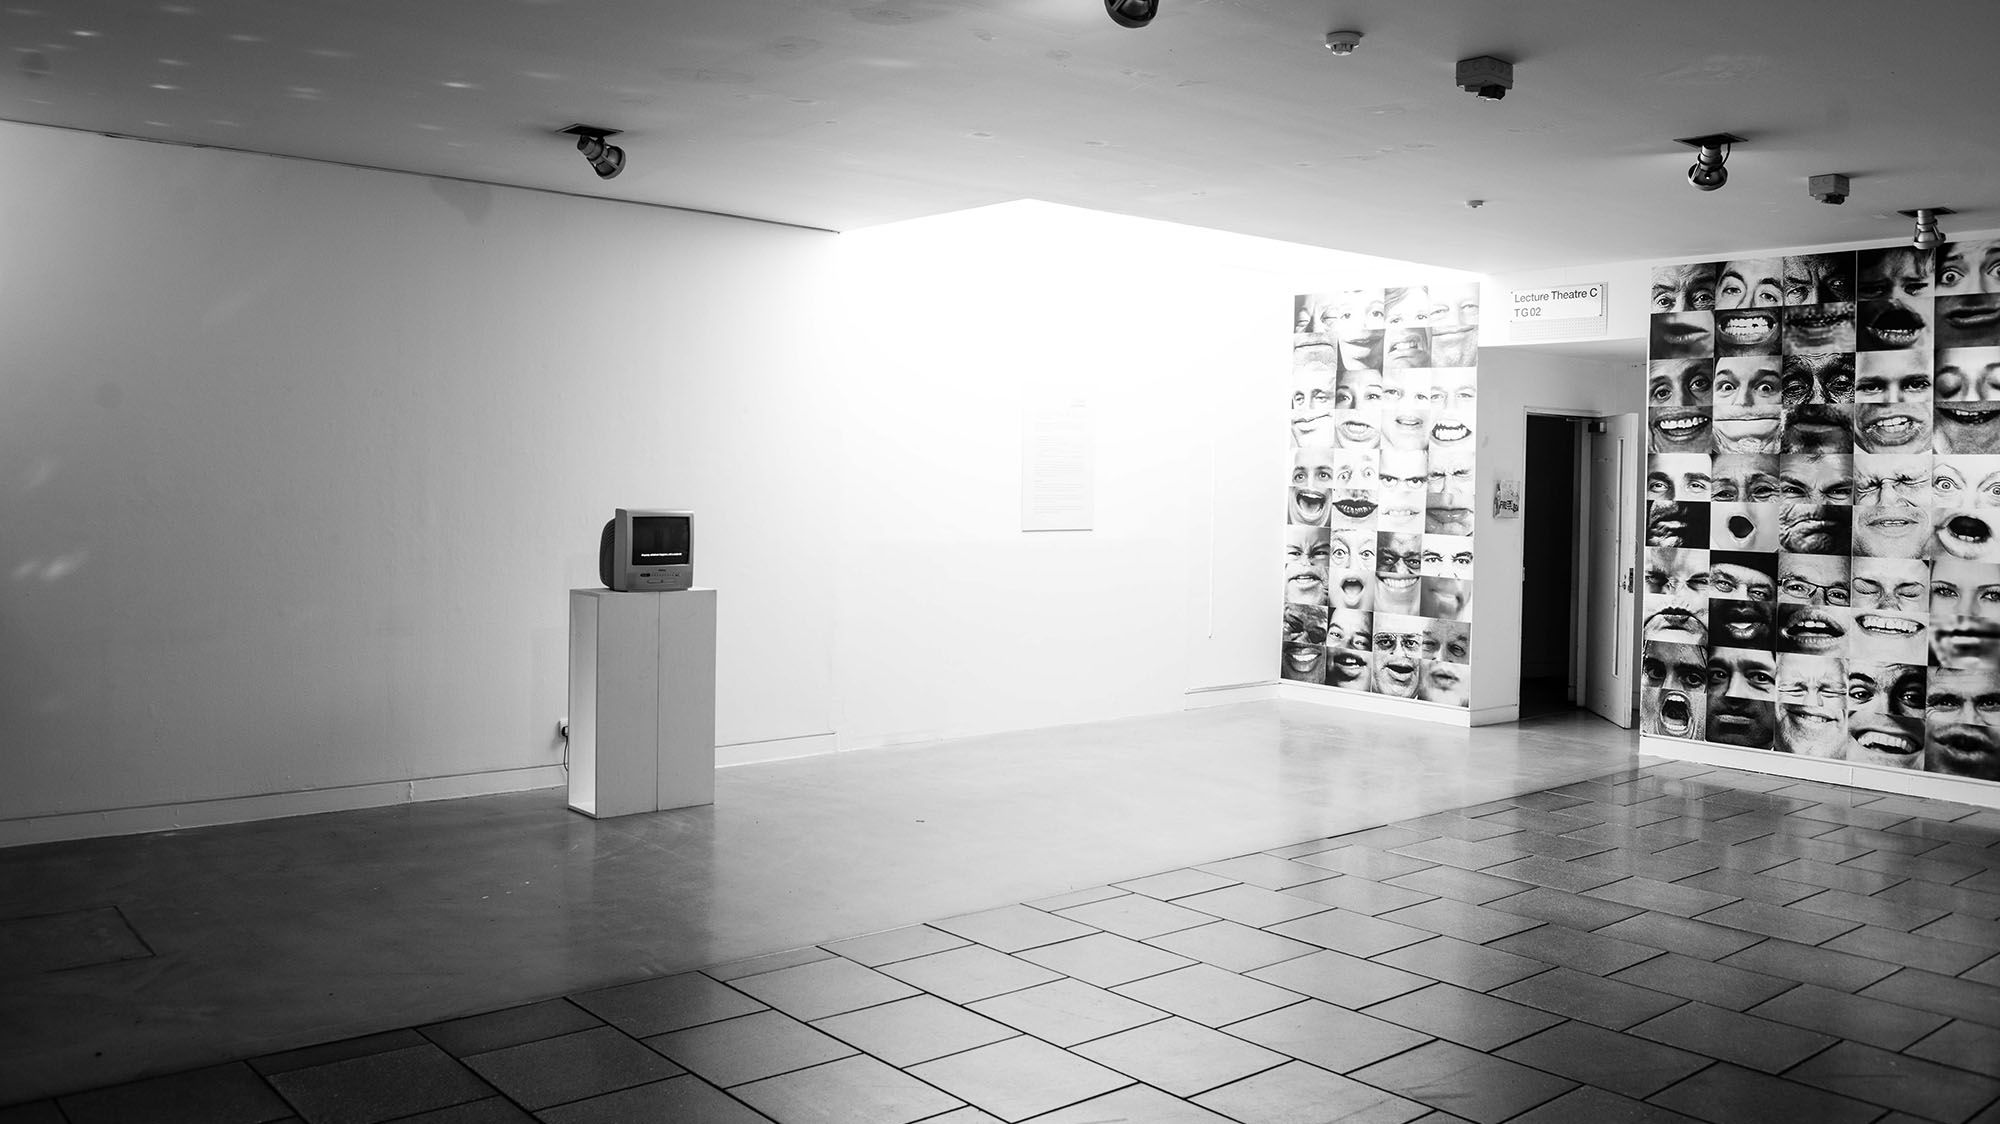 a black and white photo of an exhibition space